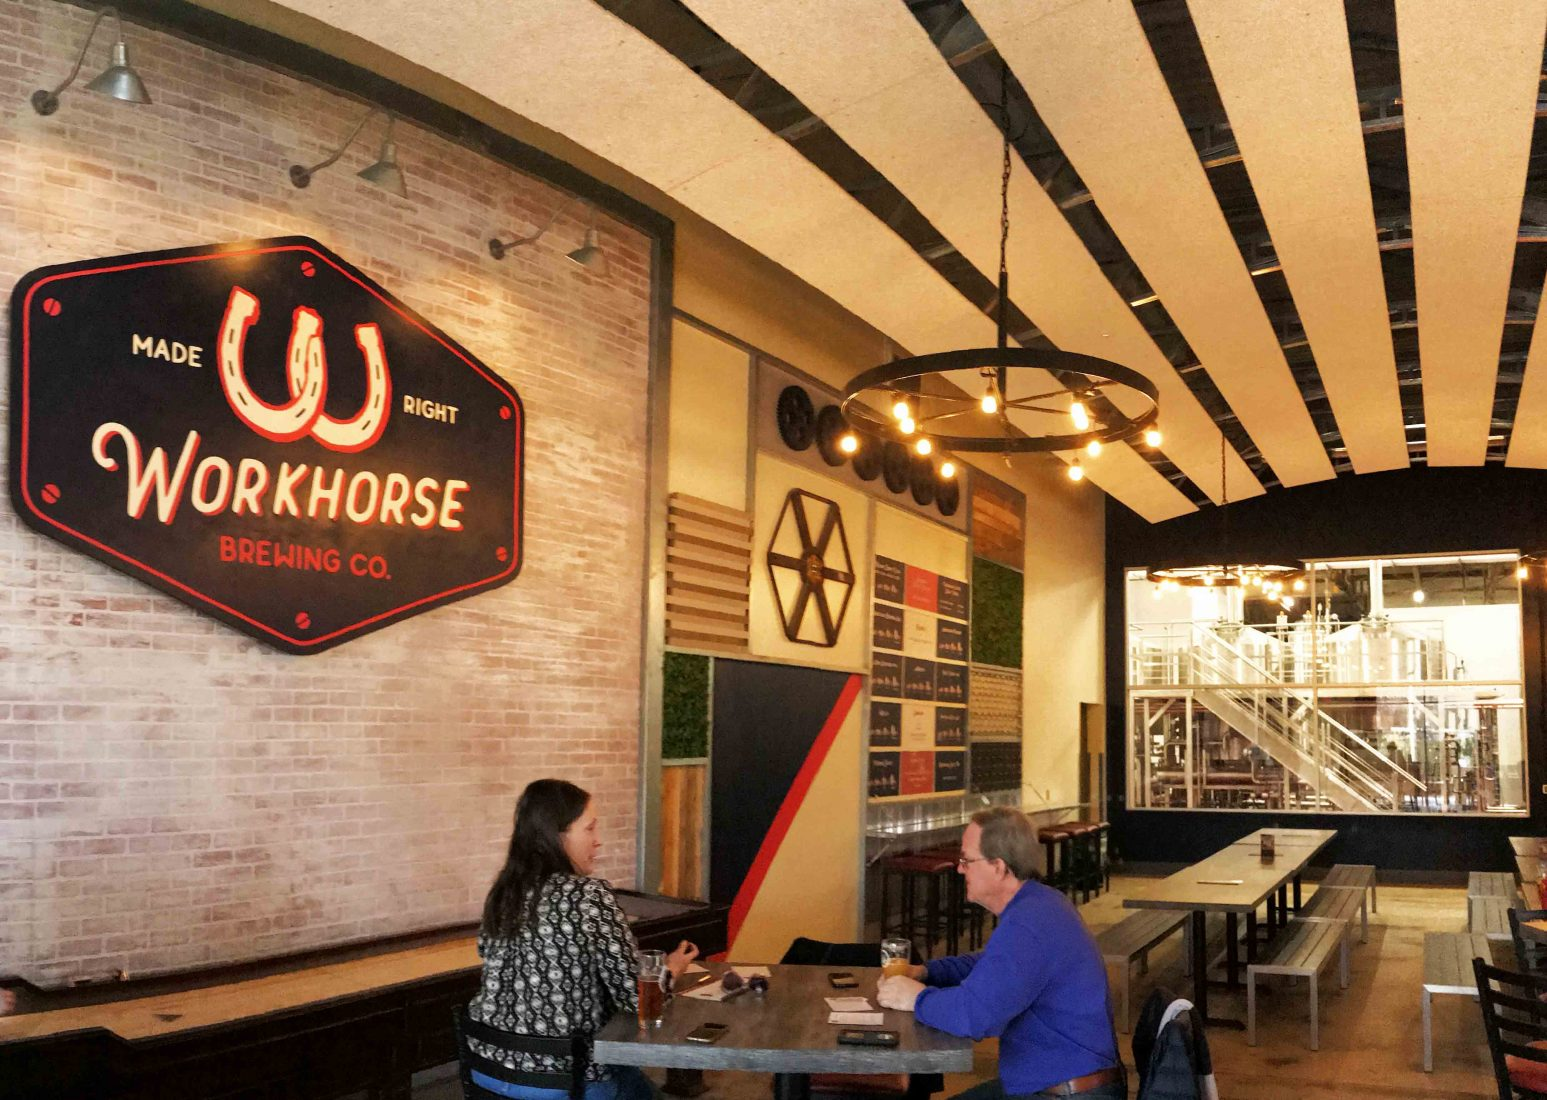 400. Workhorse Brewing Co, King of Prussia PA, 2018